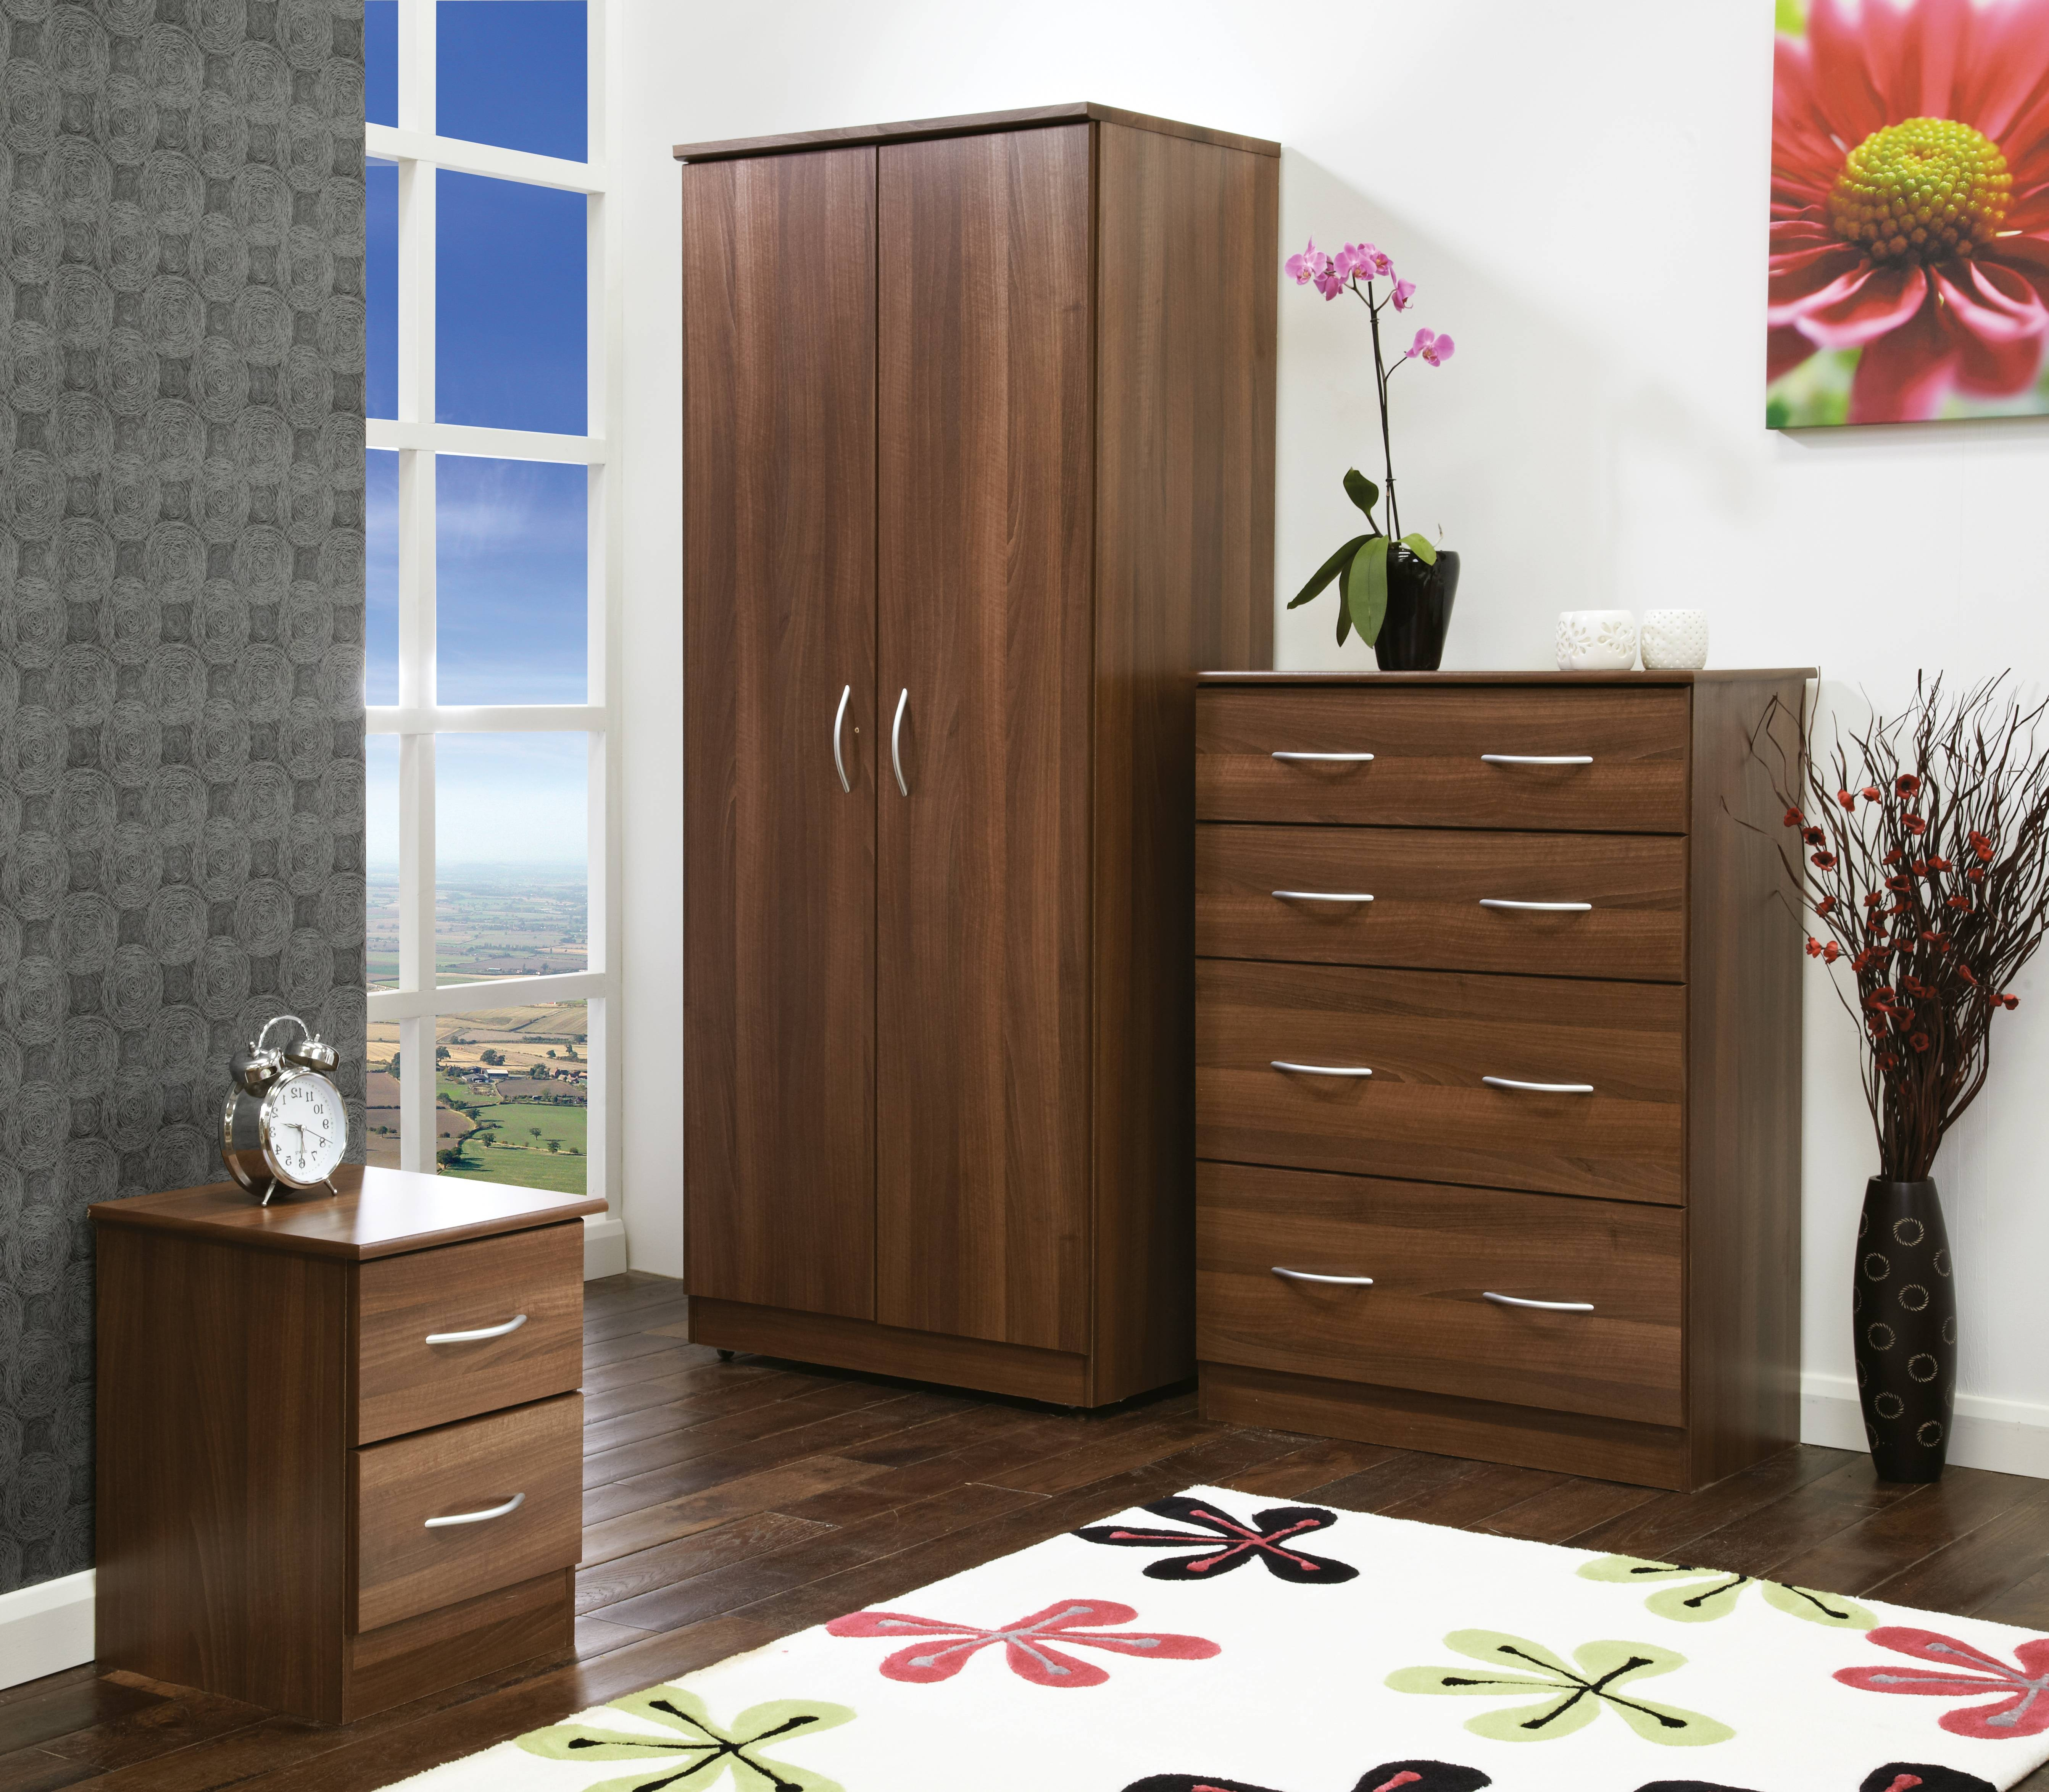 Polands Furniture Store In Worthing - Bedroom Furniture intended for Cheap Wardrobes and Chest of Drawers (Image 11 of 15)